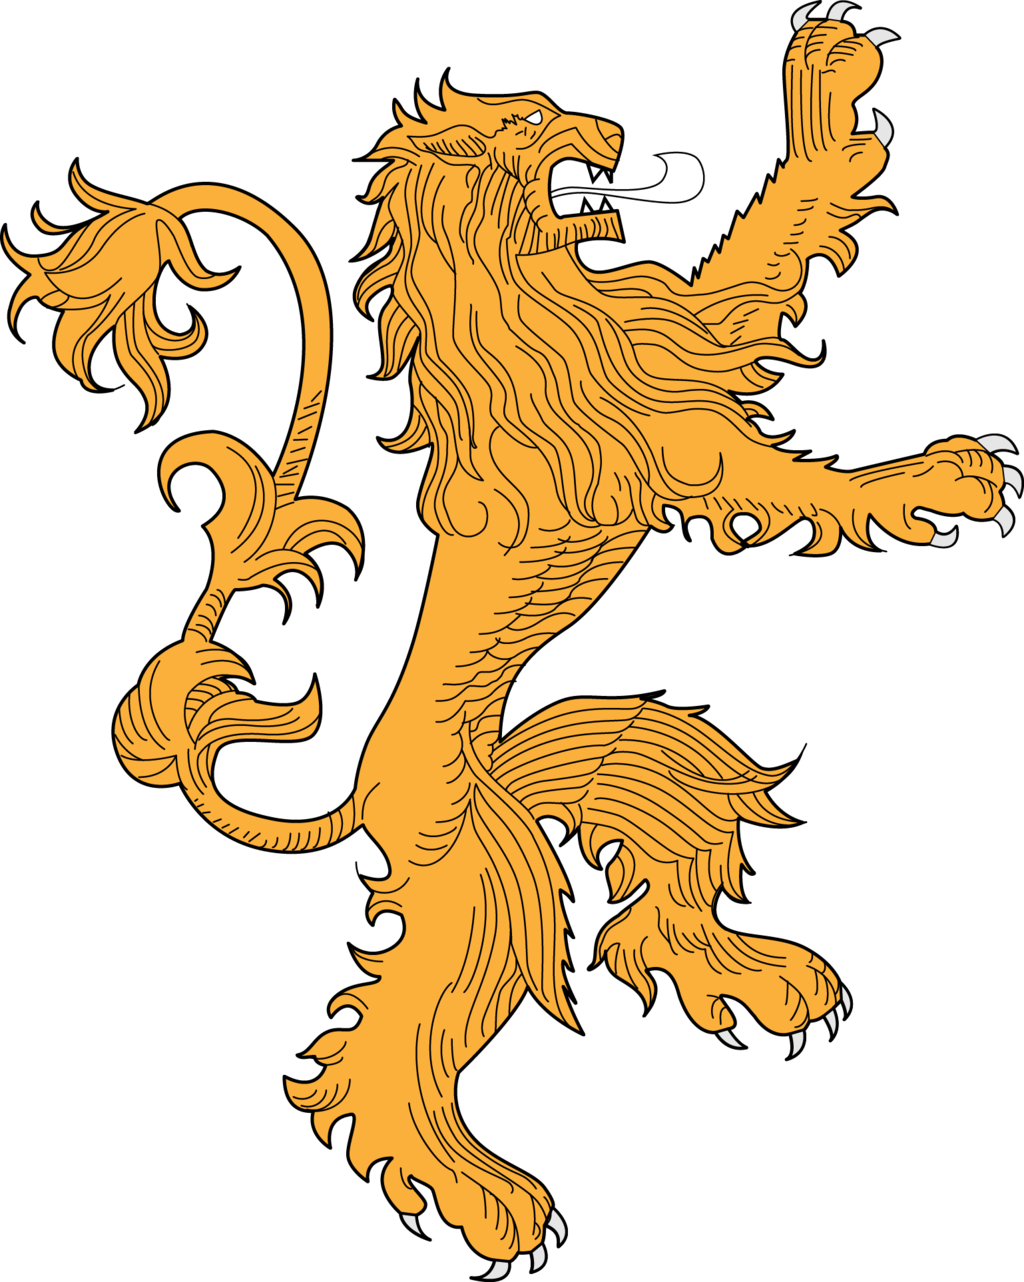 Lannister by azraeuz on. Game of thrones house sigils png